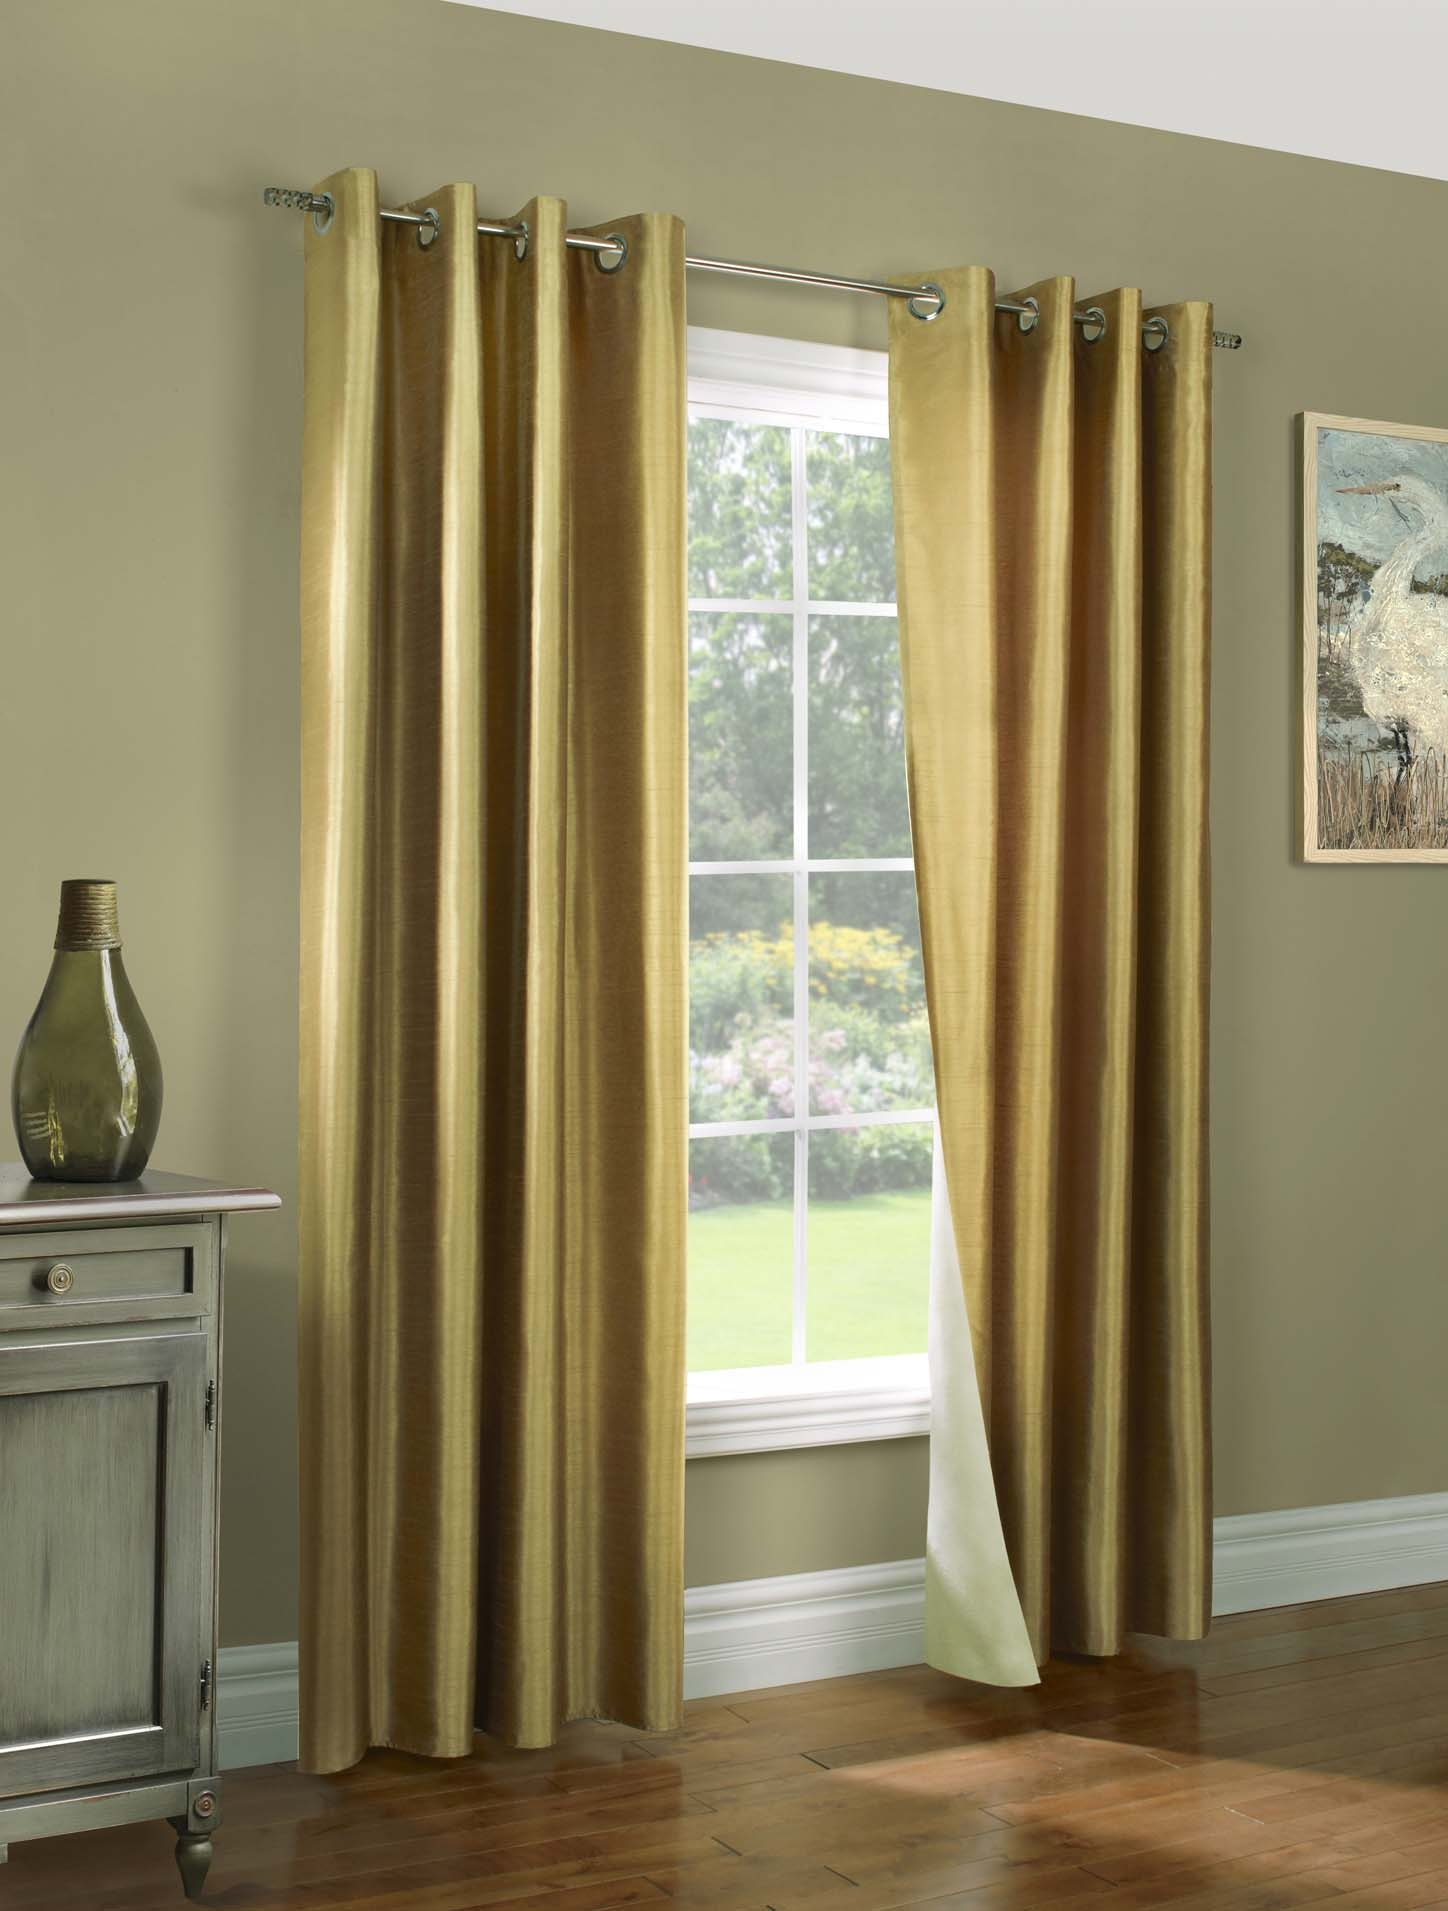 Miller Super Insulated Reversible Drapes Pertaining To Double Lined Curtains (Image 13 of 15)